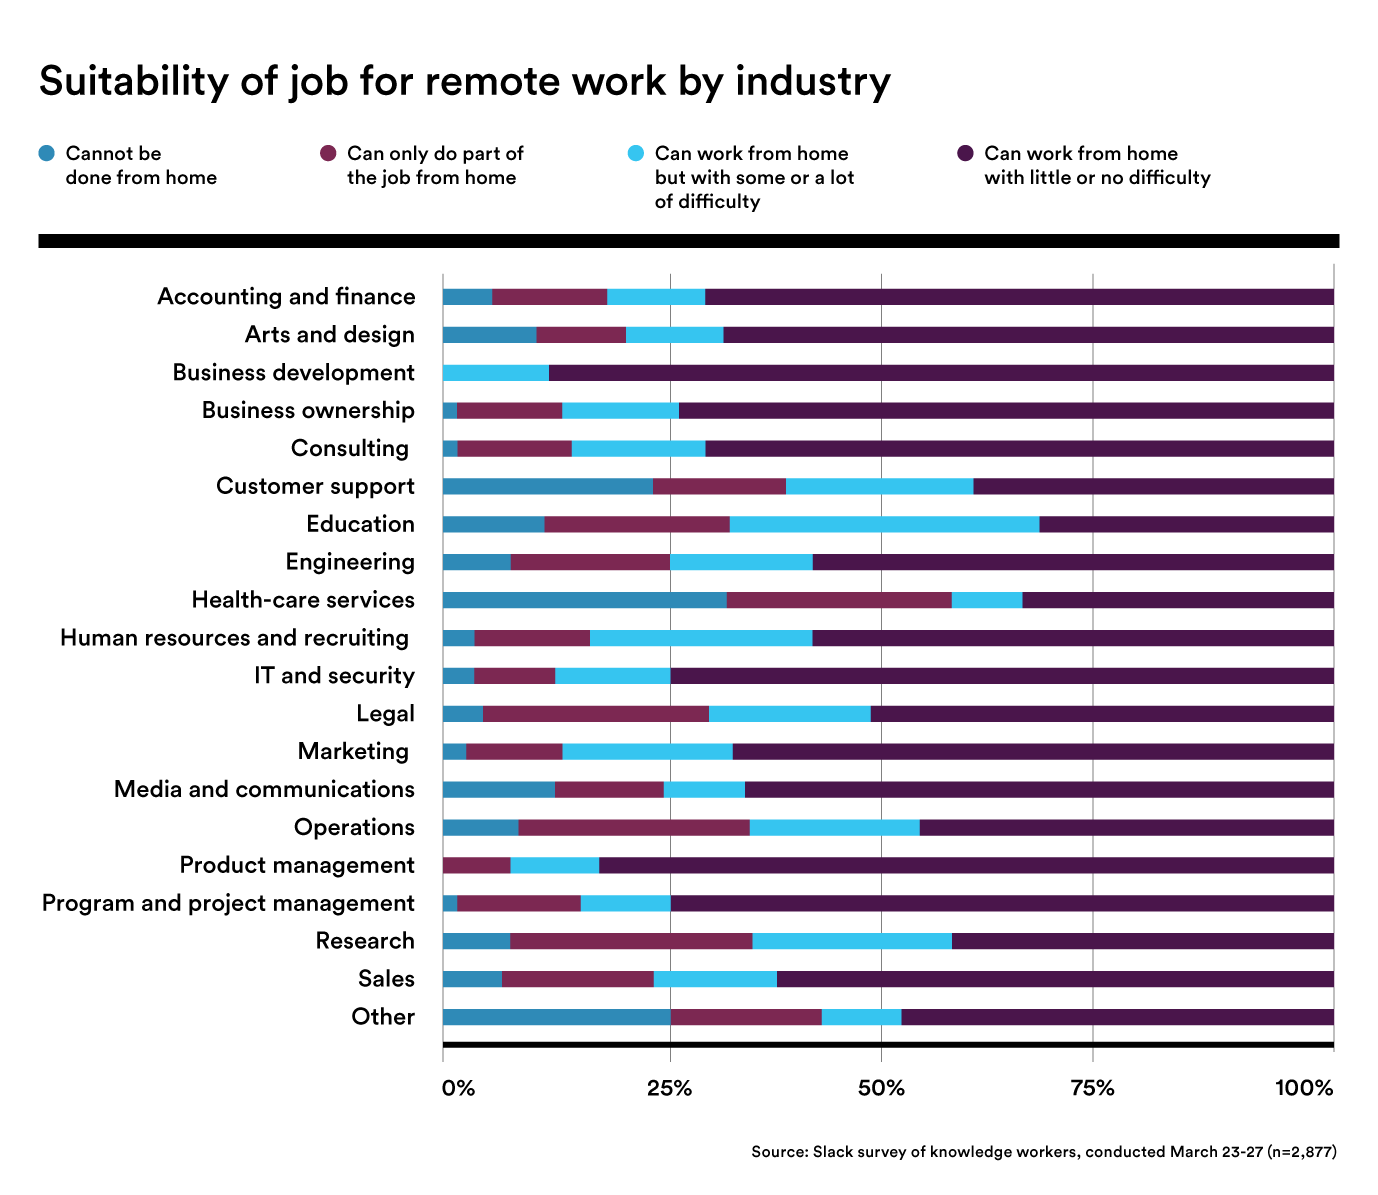 Chart showing suitability of jobs for remote work by industry.